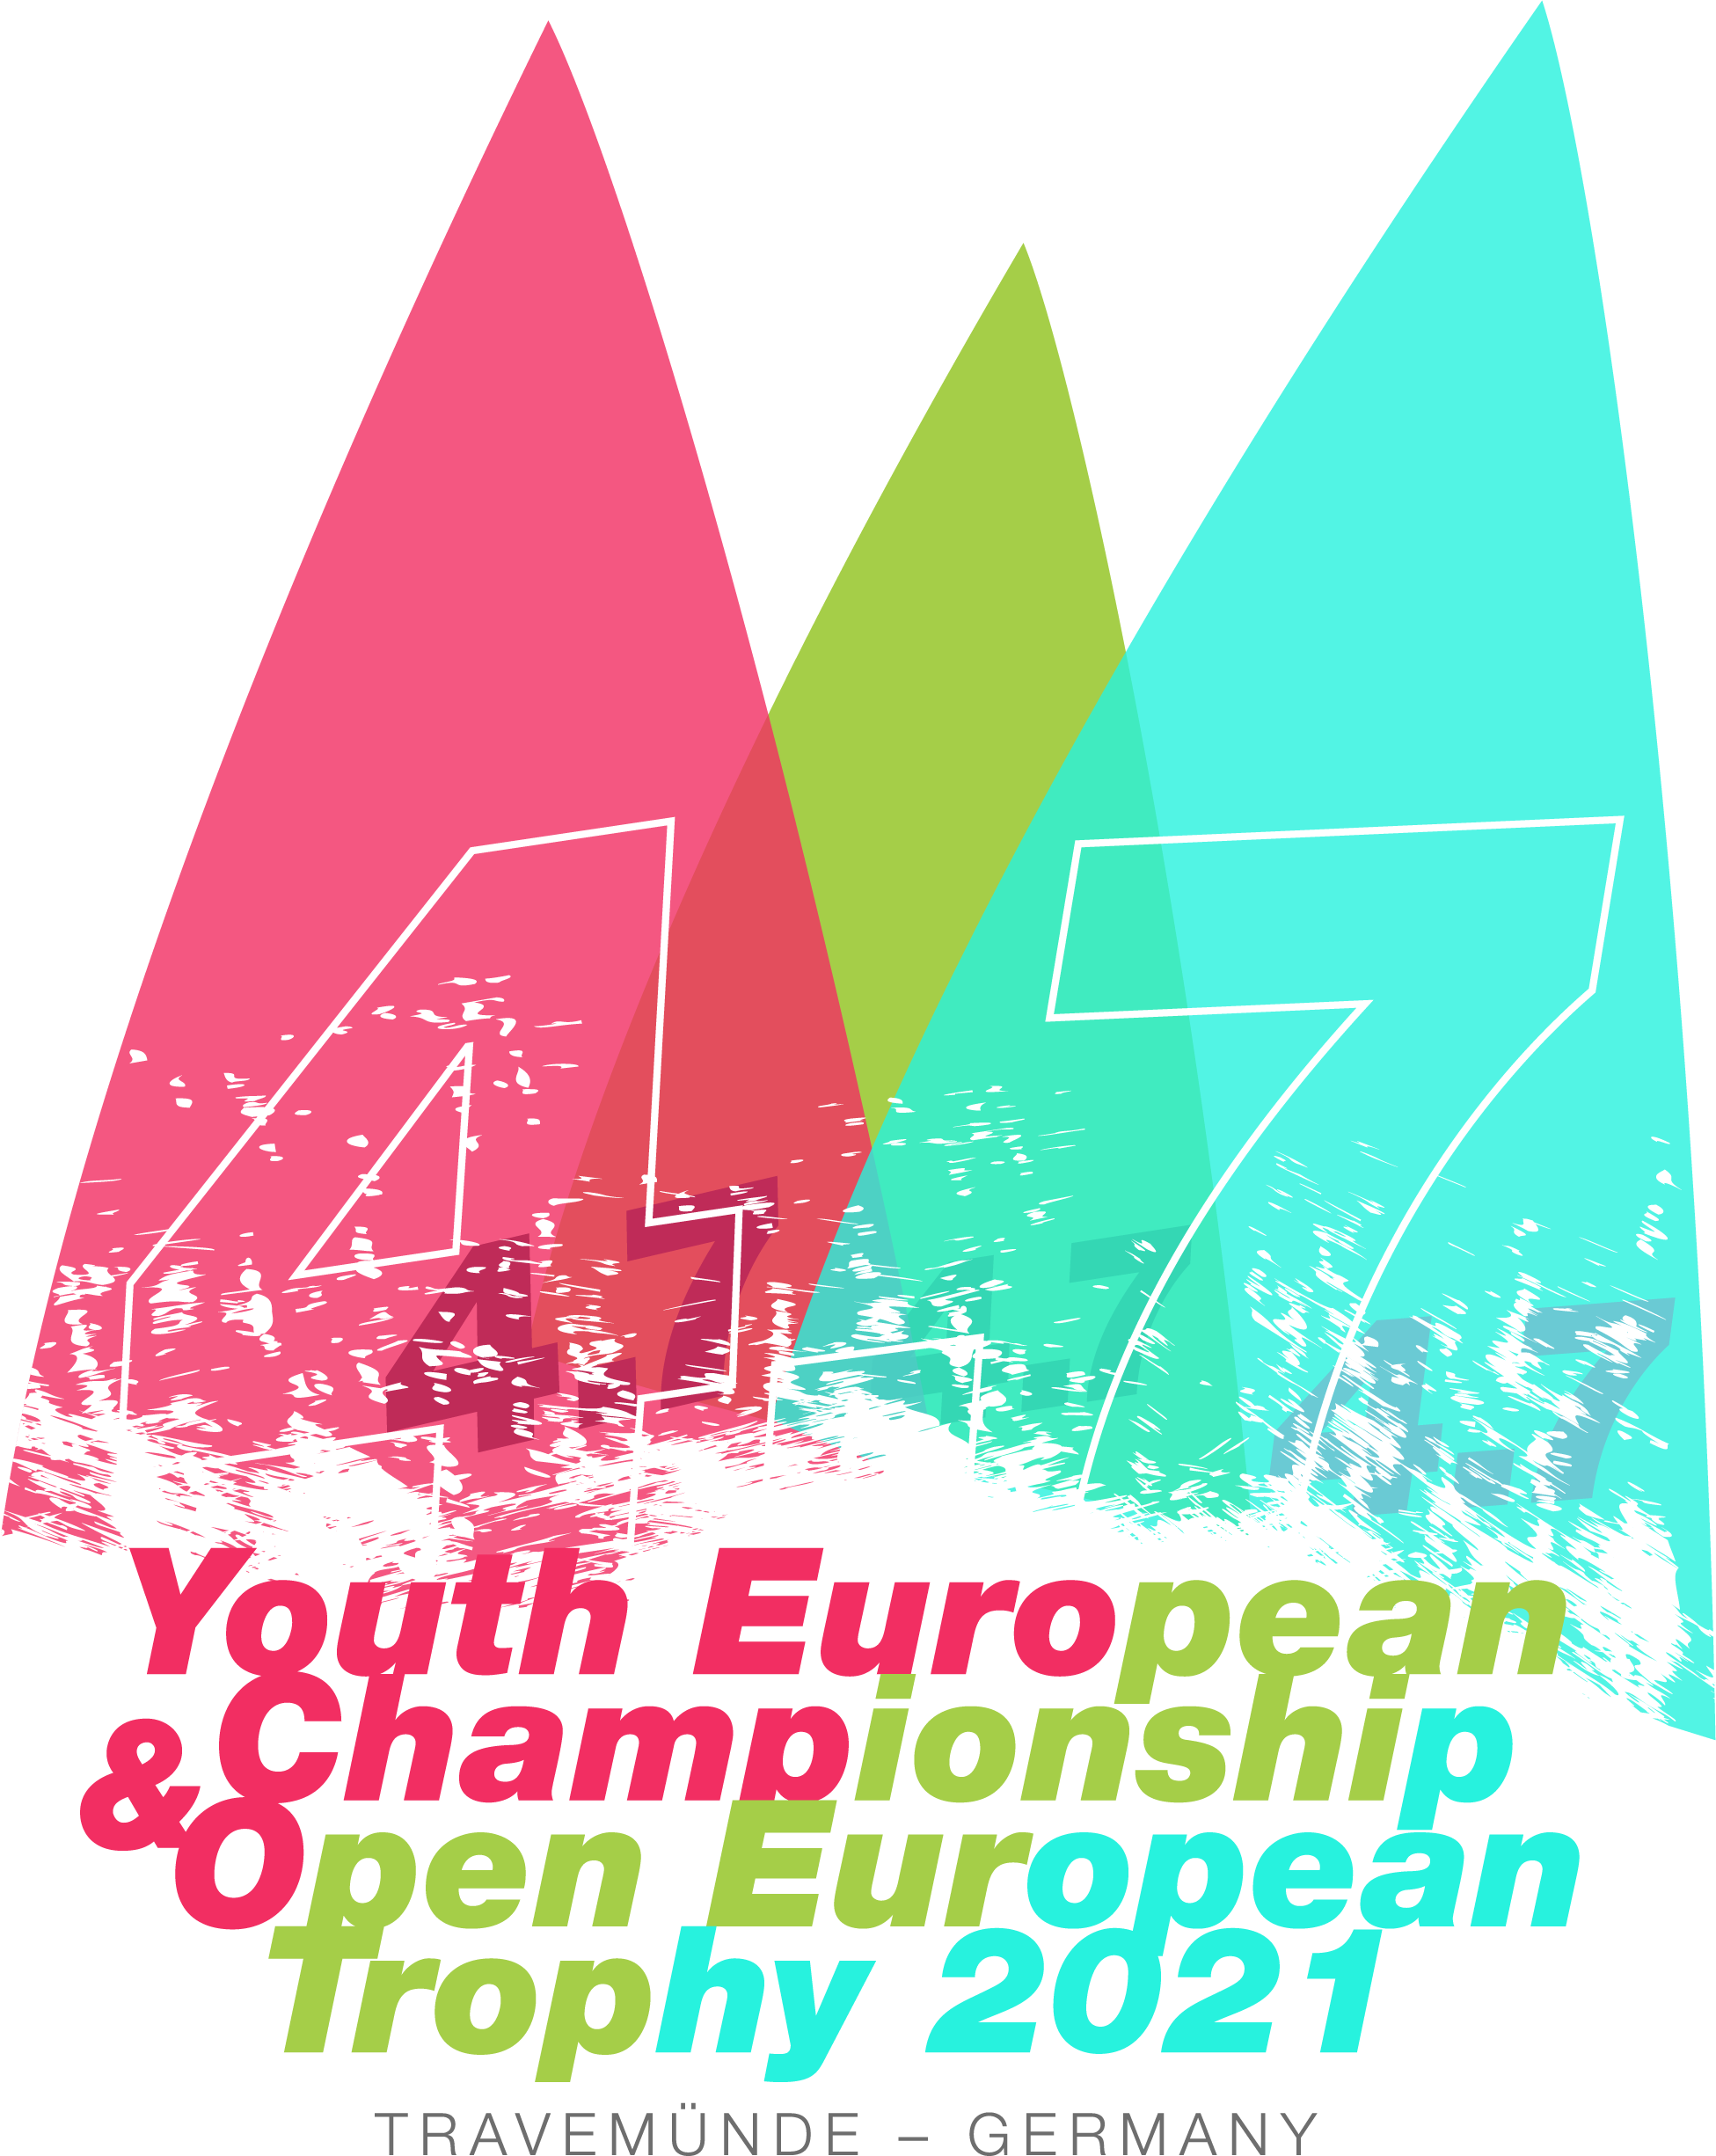 4.7 Youth European Championship & Open European Trophy 2021